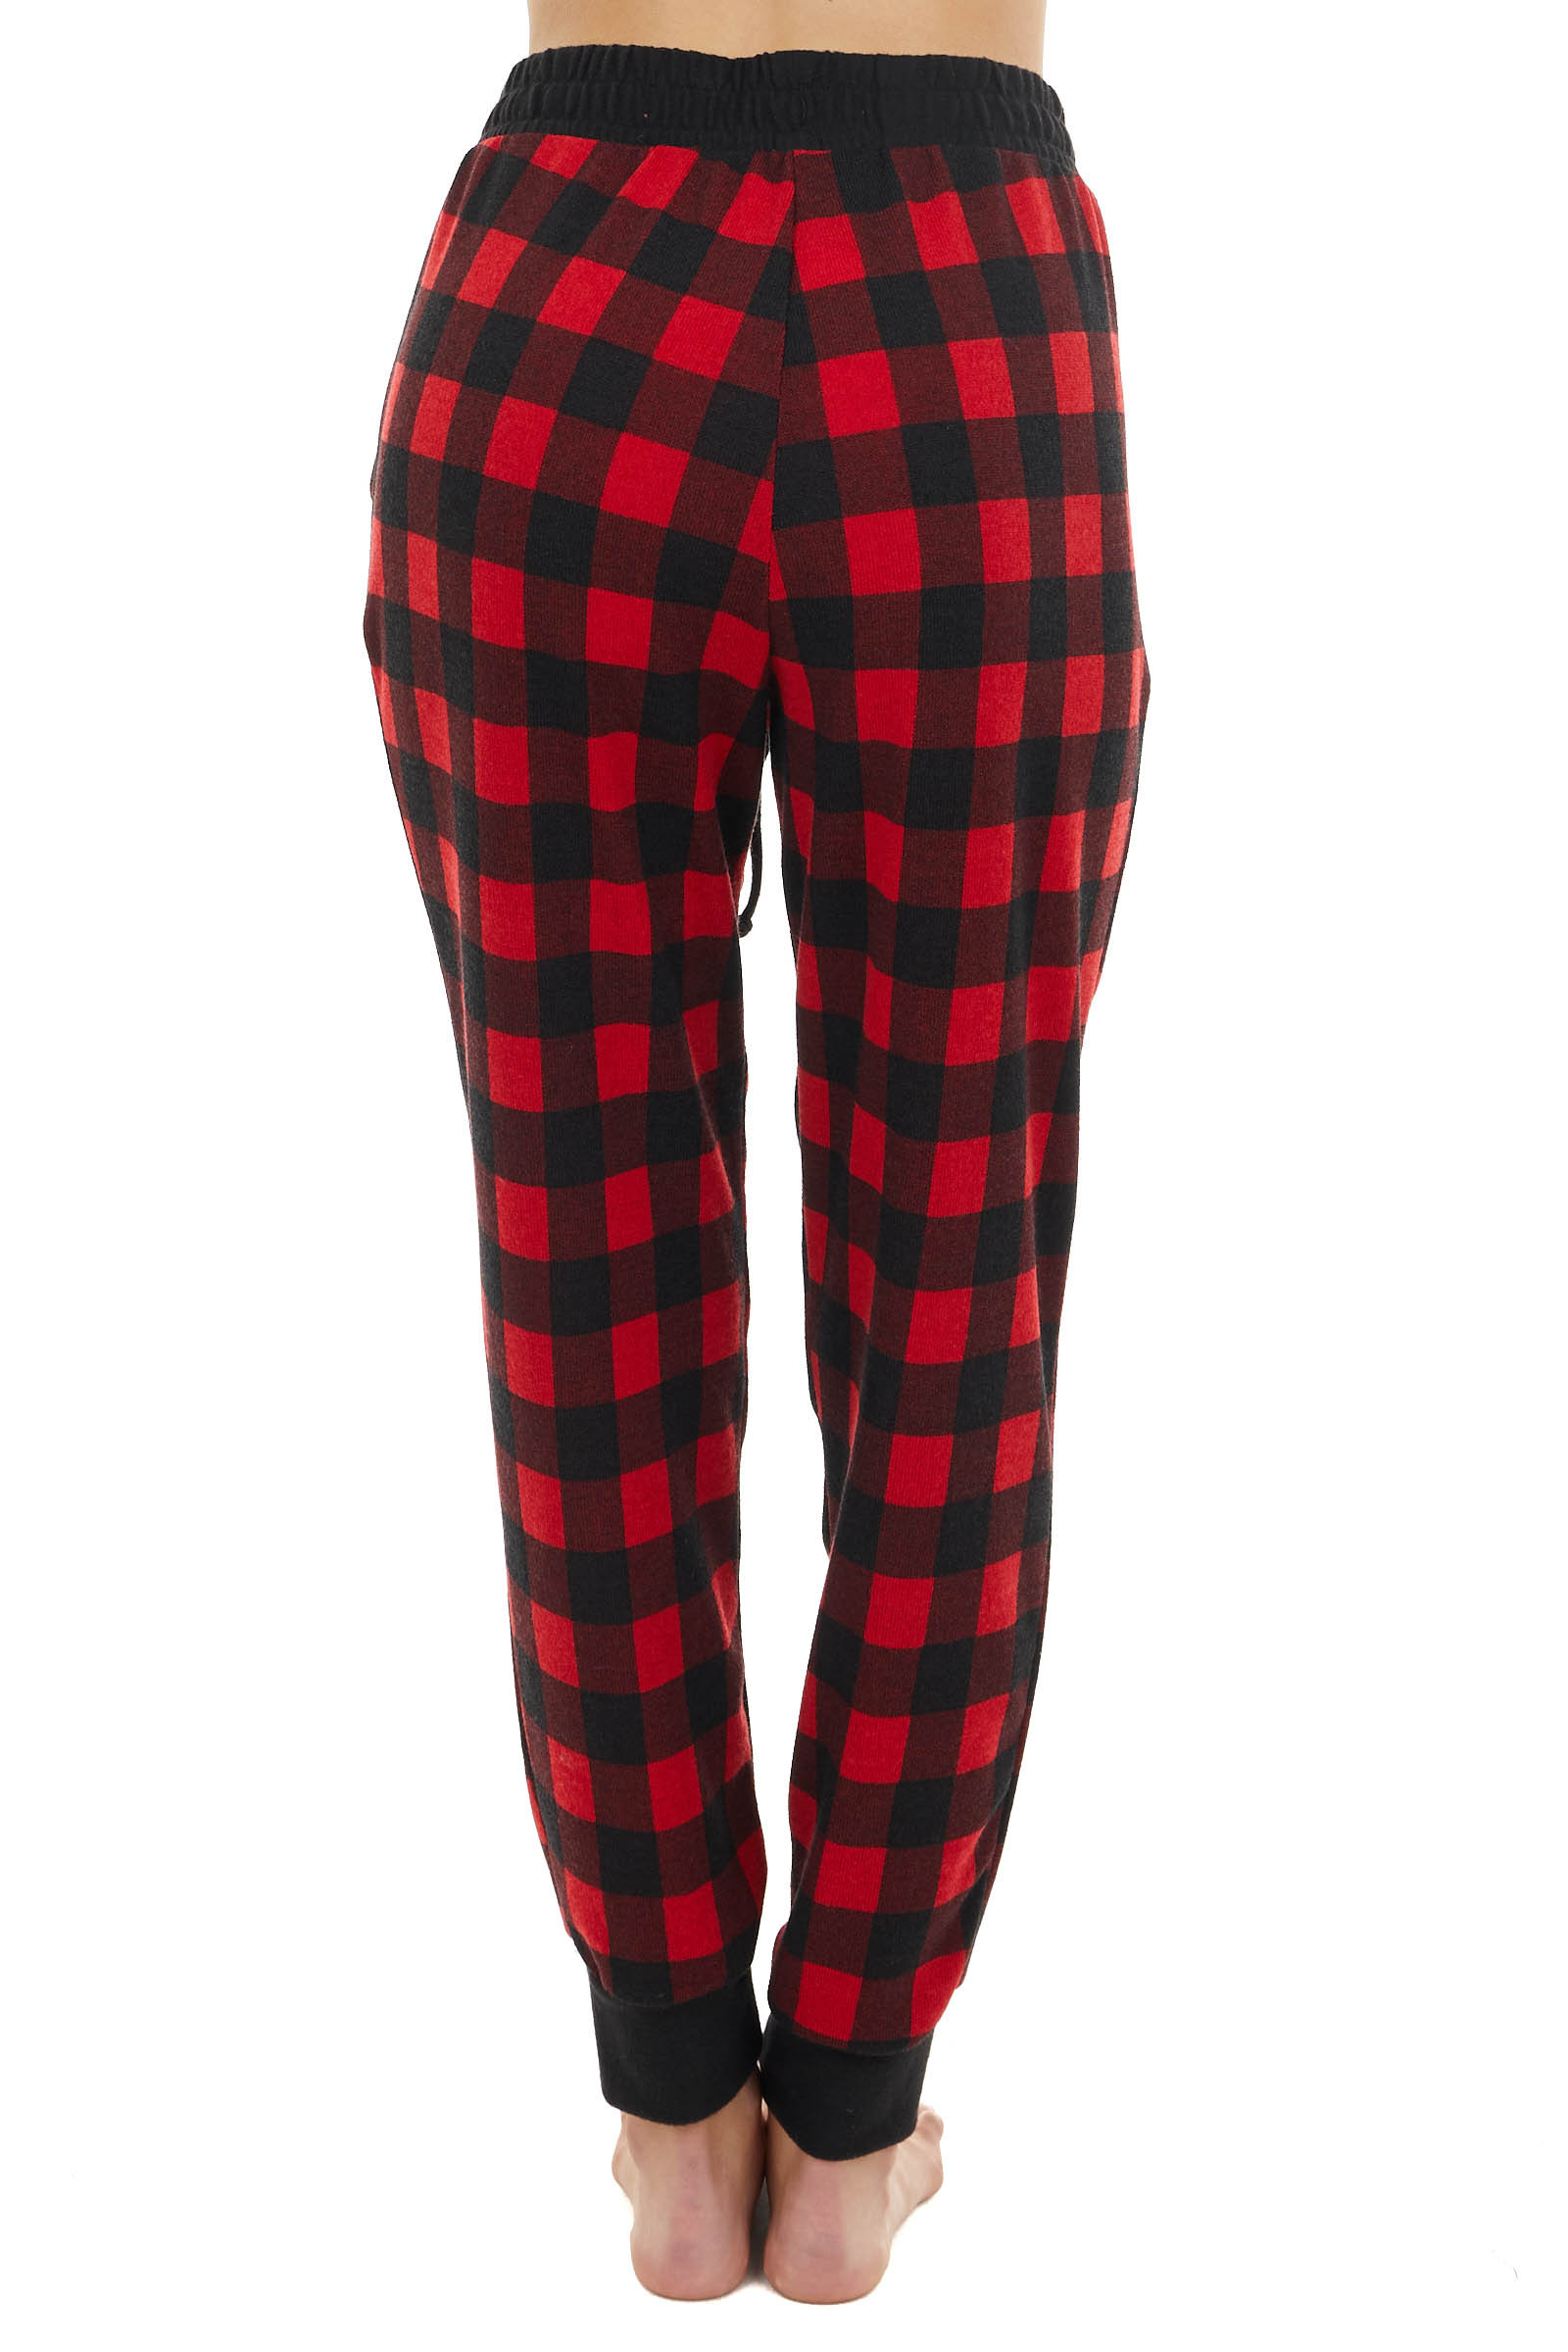 Cranberry Red and Black Buffalo Plaid Joggers with Pockets